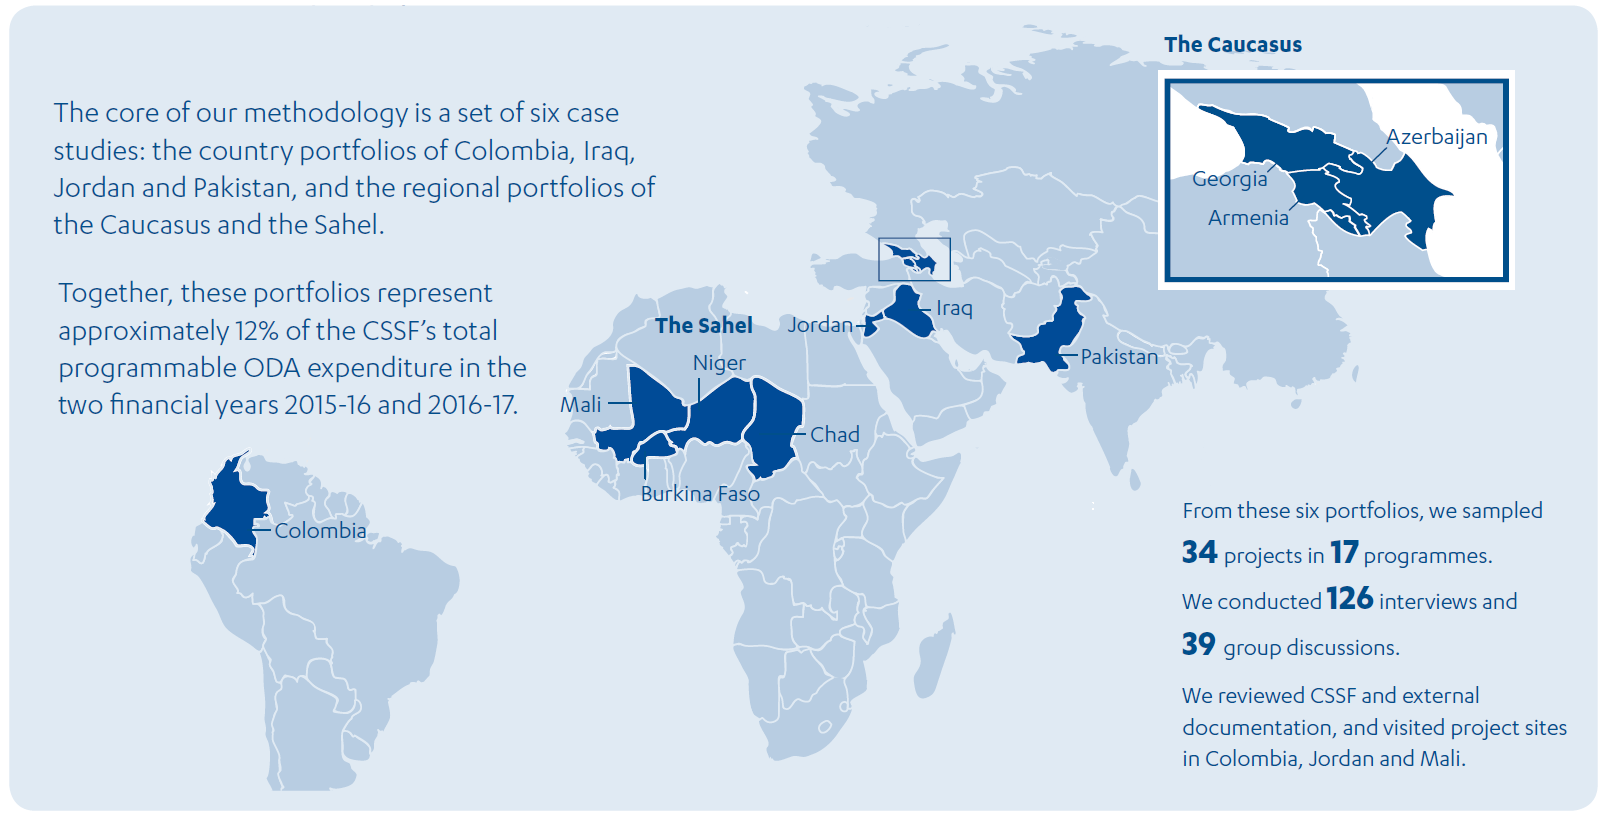 Map showing country case studies: Colombia, The Shael, Mali, Burkina Faso, Jordan, Iraq, Pakistan and the Causasus.